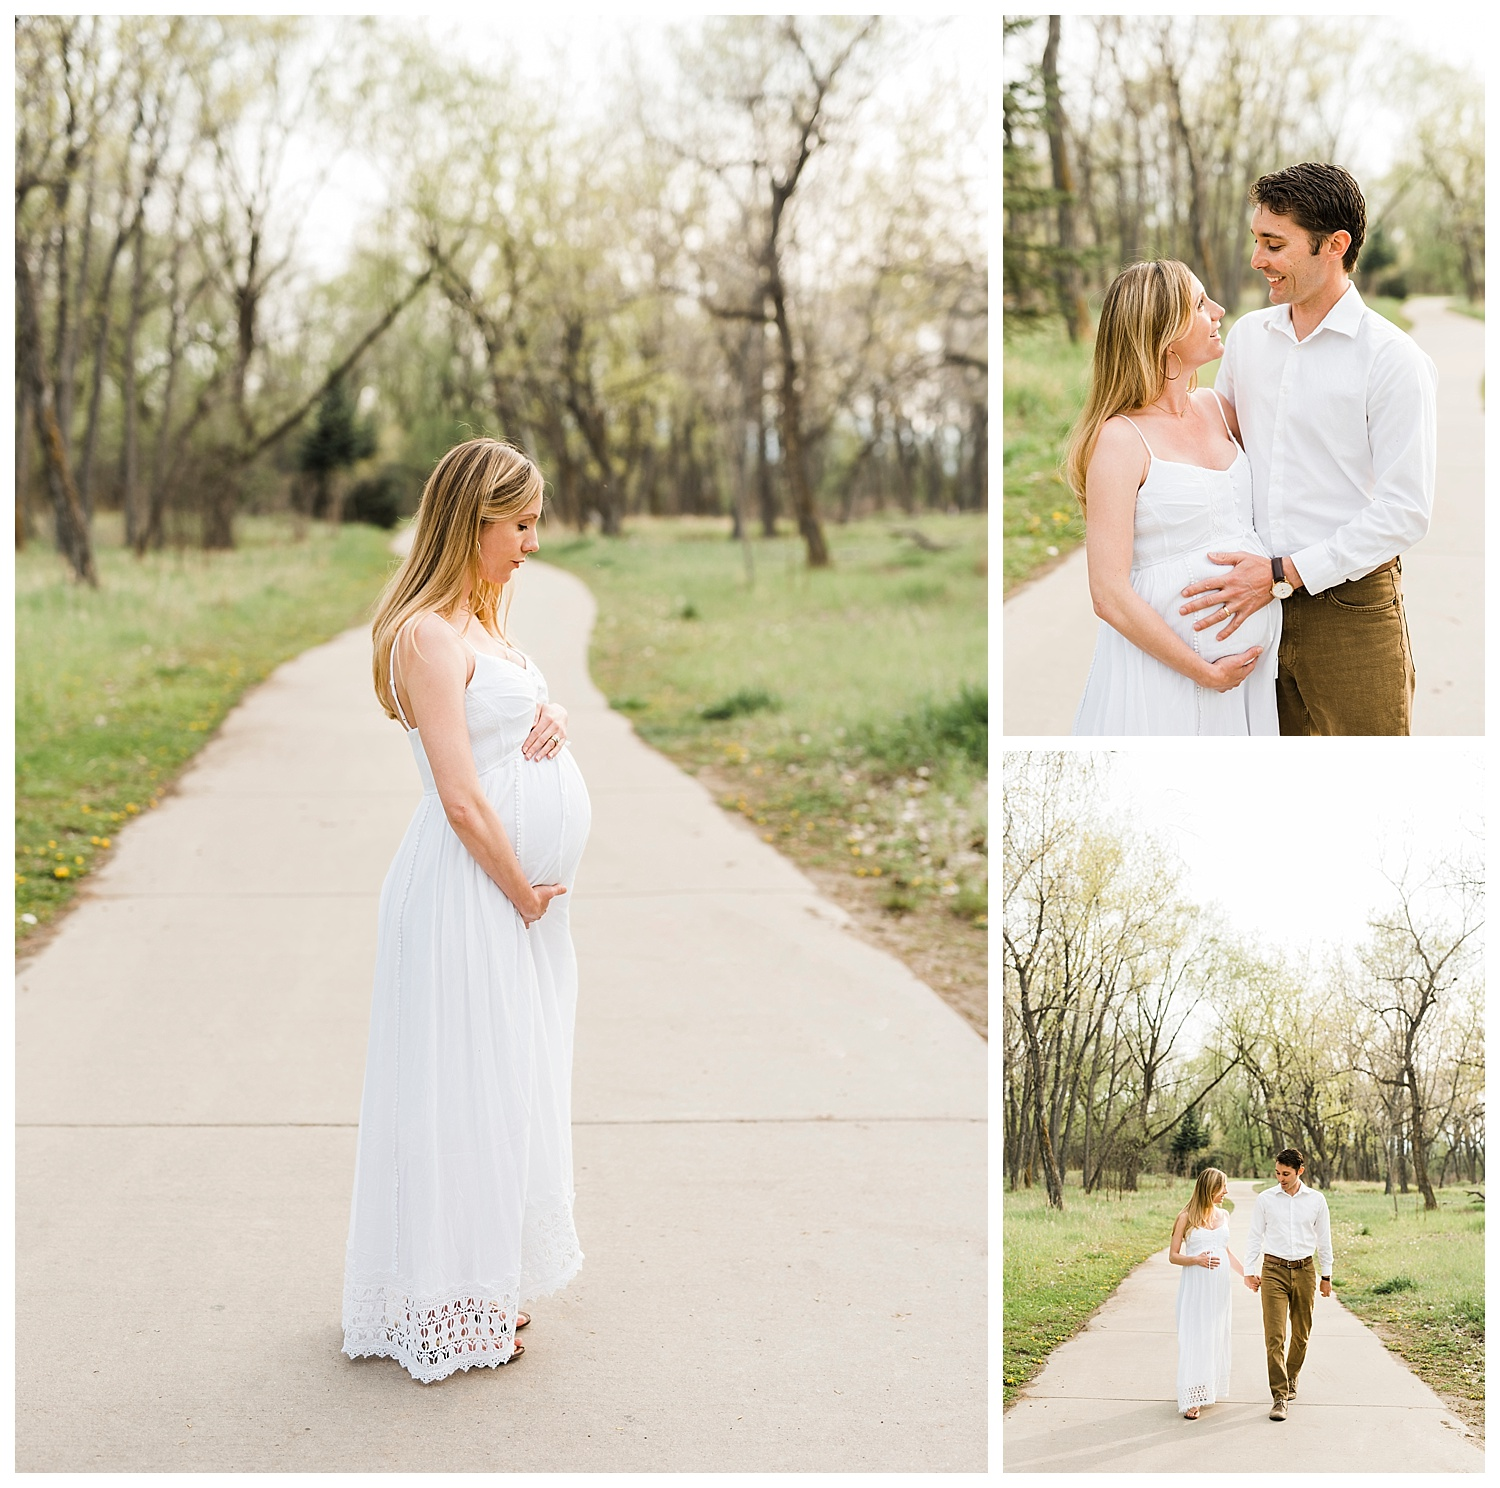 Linn_Maternity_Photos_Apollo_Fields_45.jpg